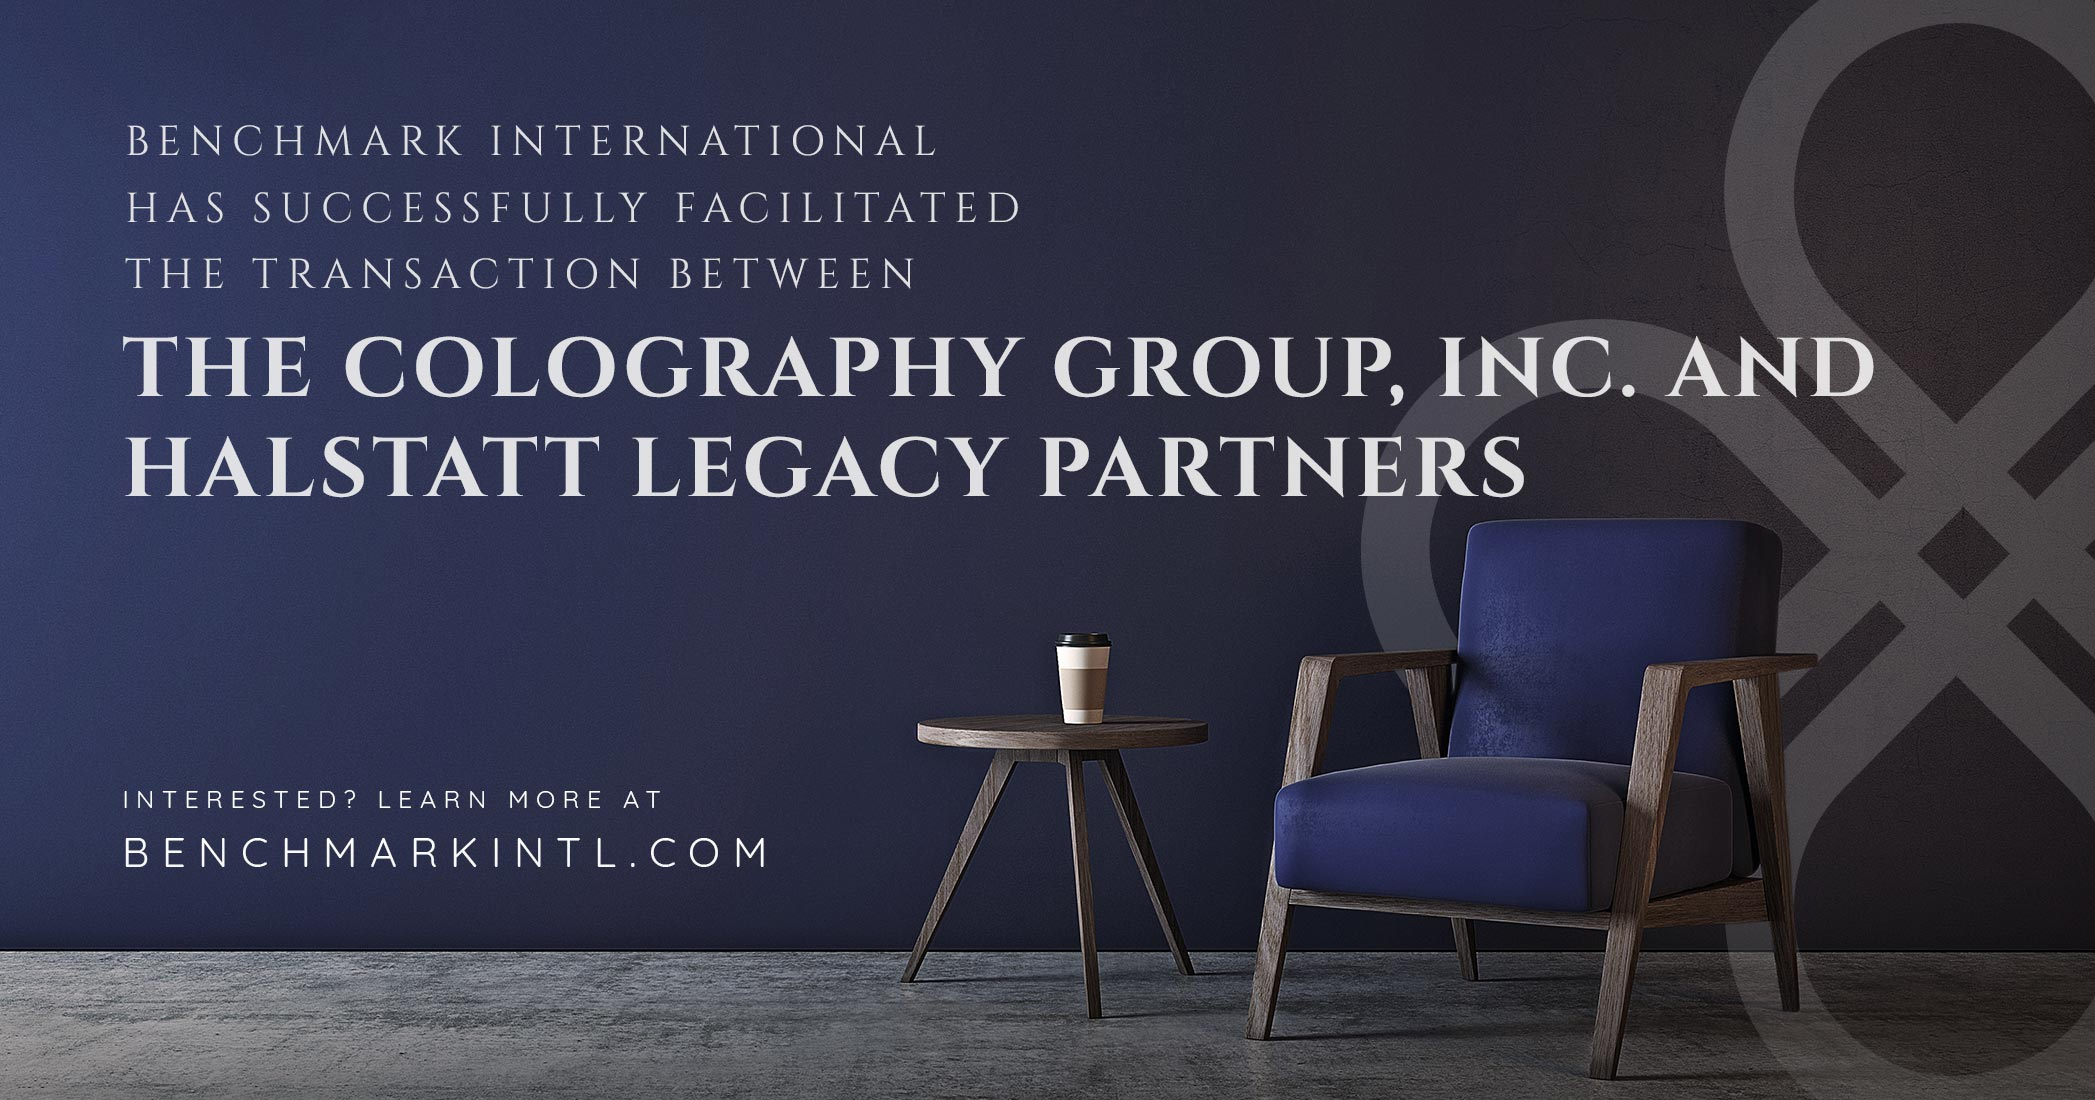 Benchmark International Successfully Facilitated the Transaction Between The Colography Group, Inc. and Halstatt Legacy Partners